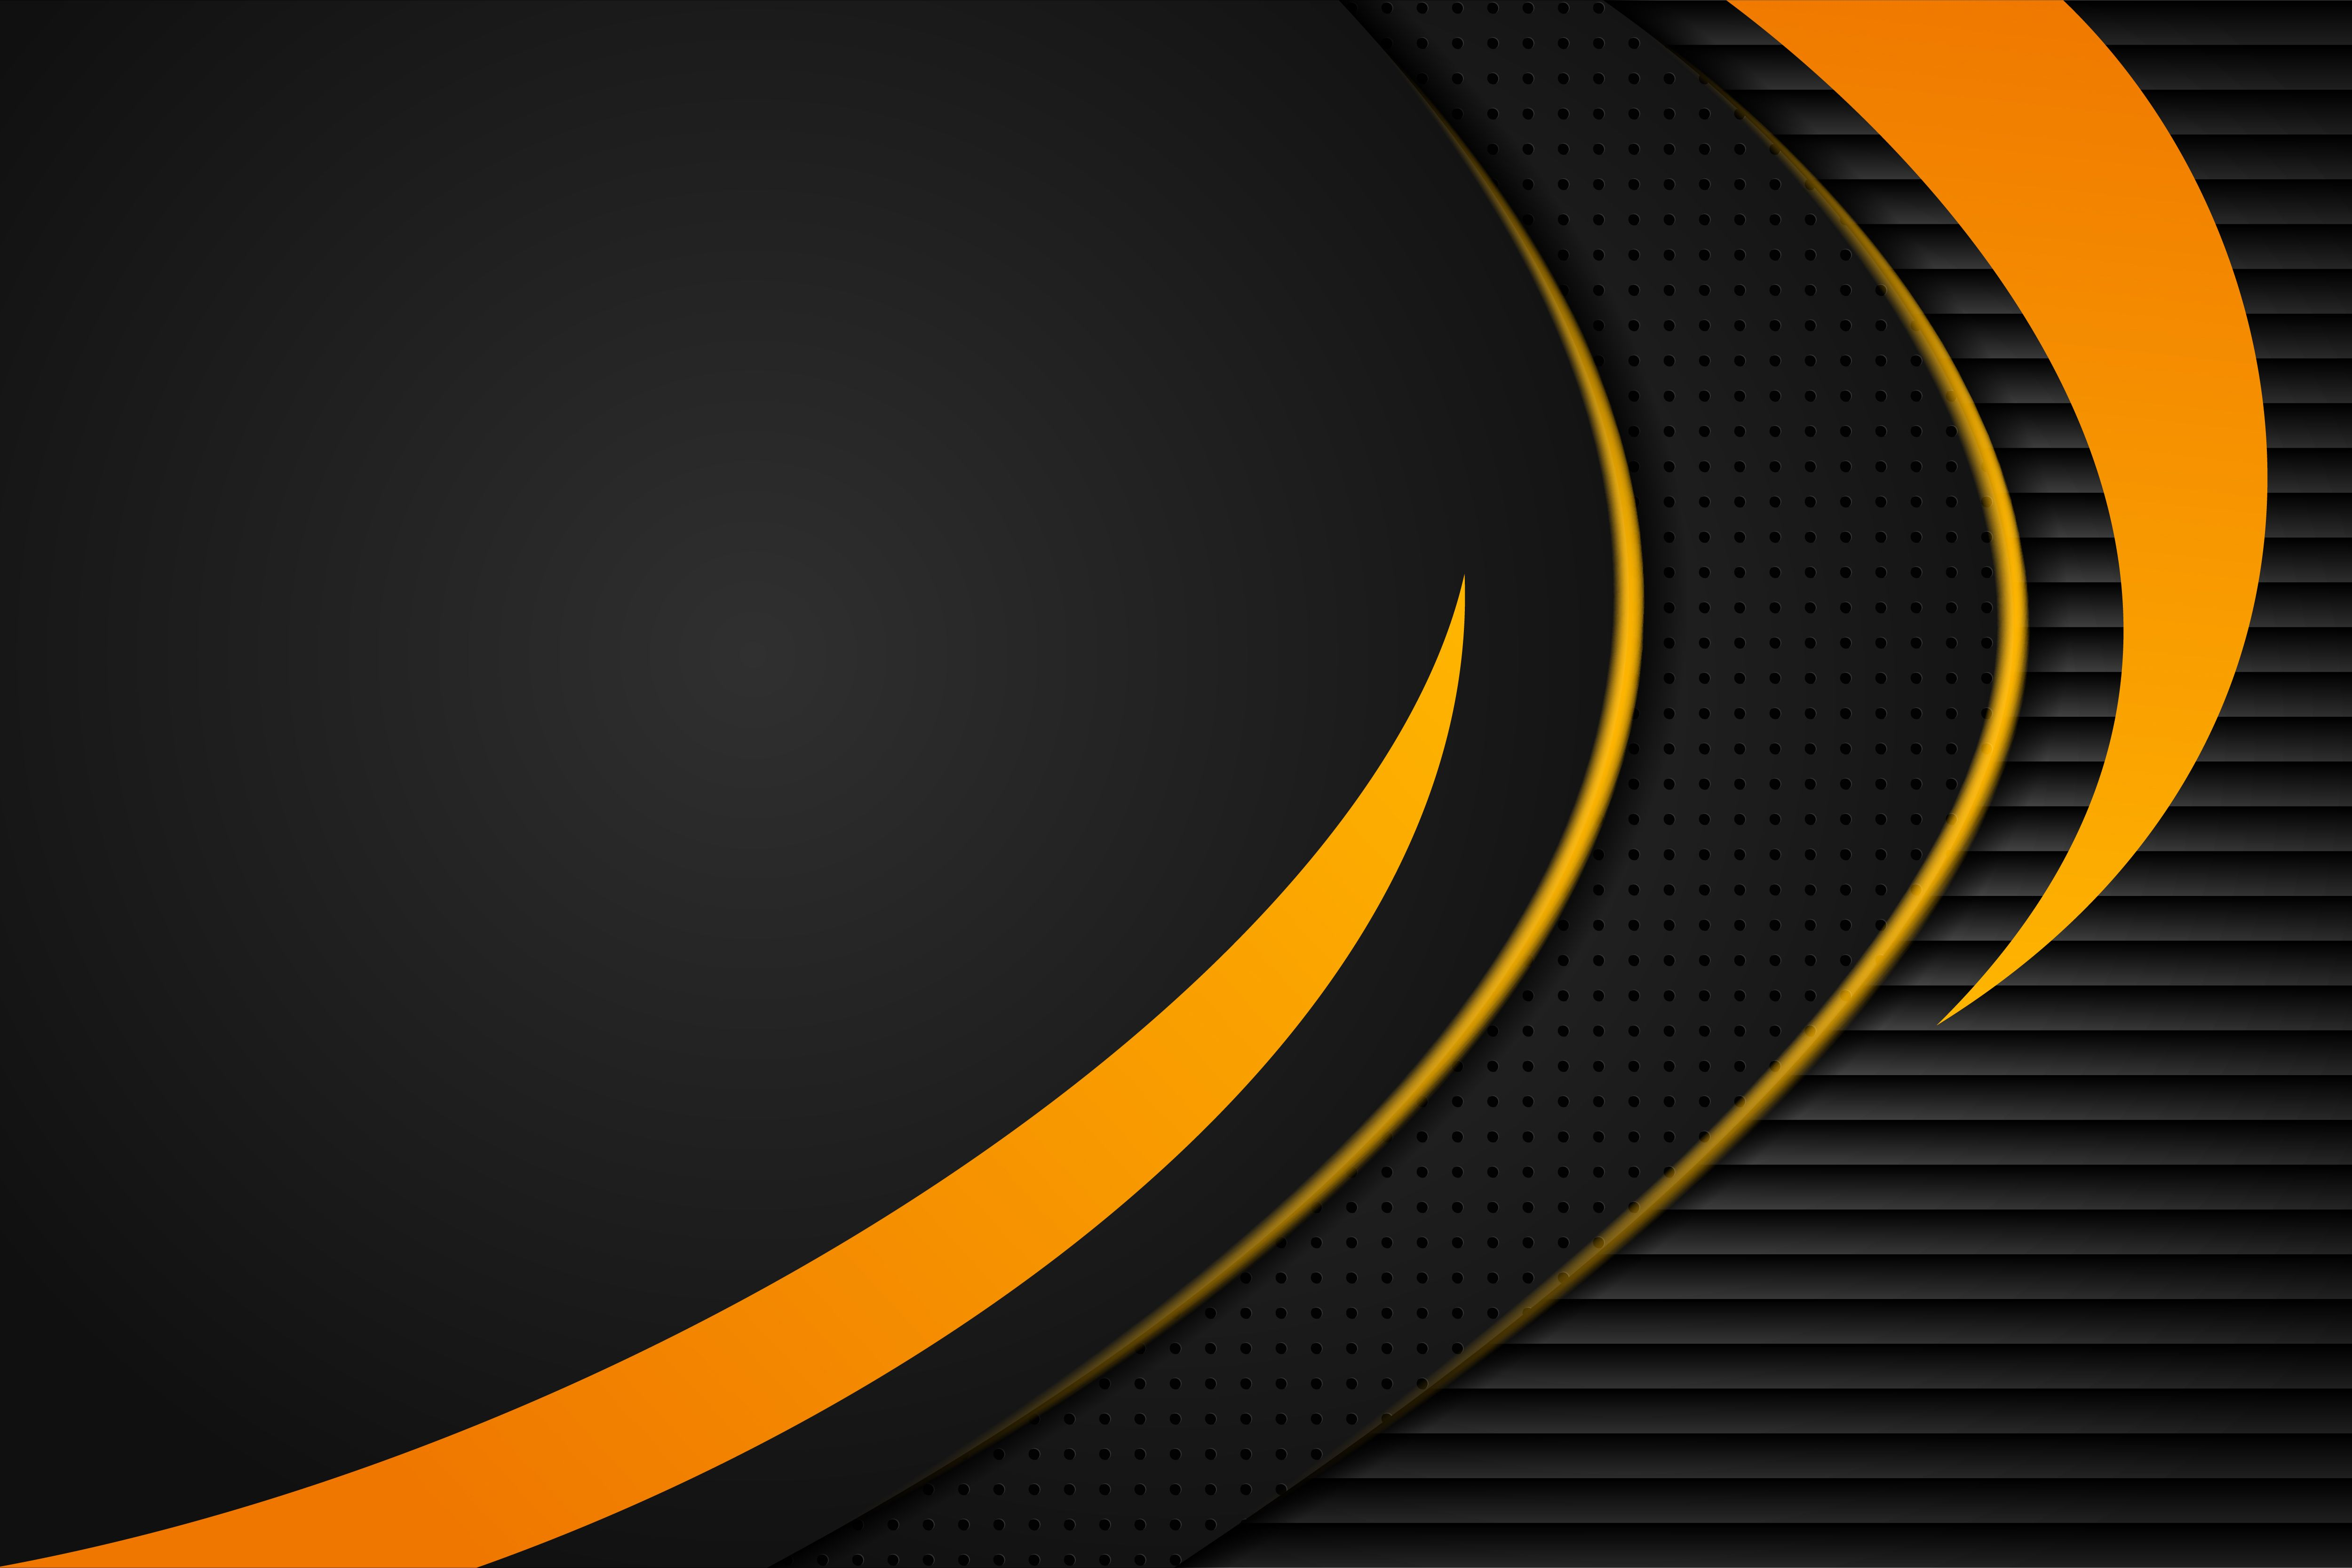 Orange Black Abstract Curve Background Graphic By Noory Shopper Creative Fabrica In 2021 Black Abstract Background Black Abstract Background